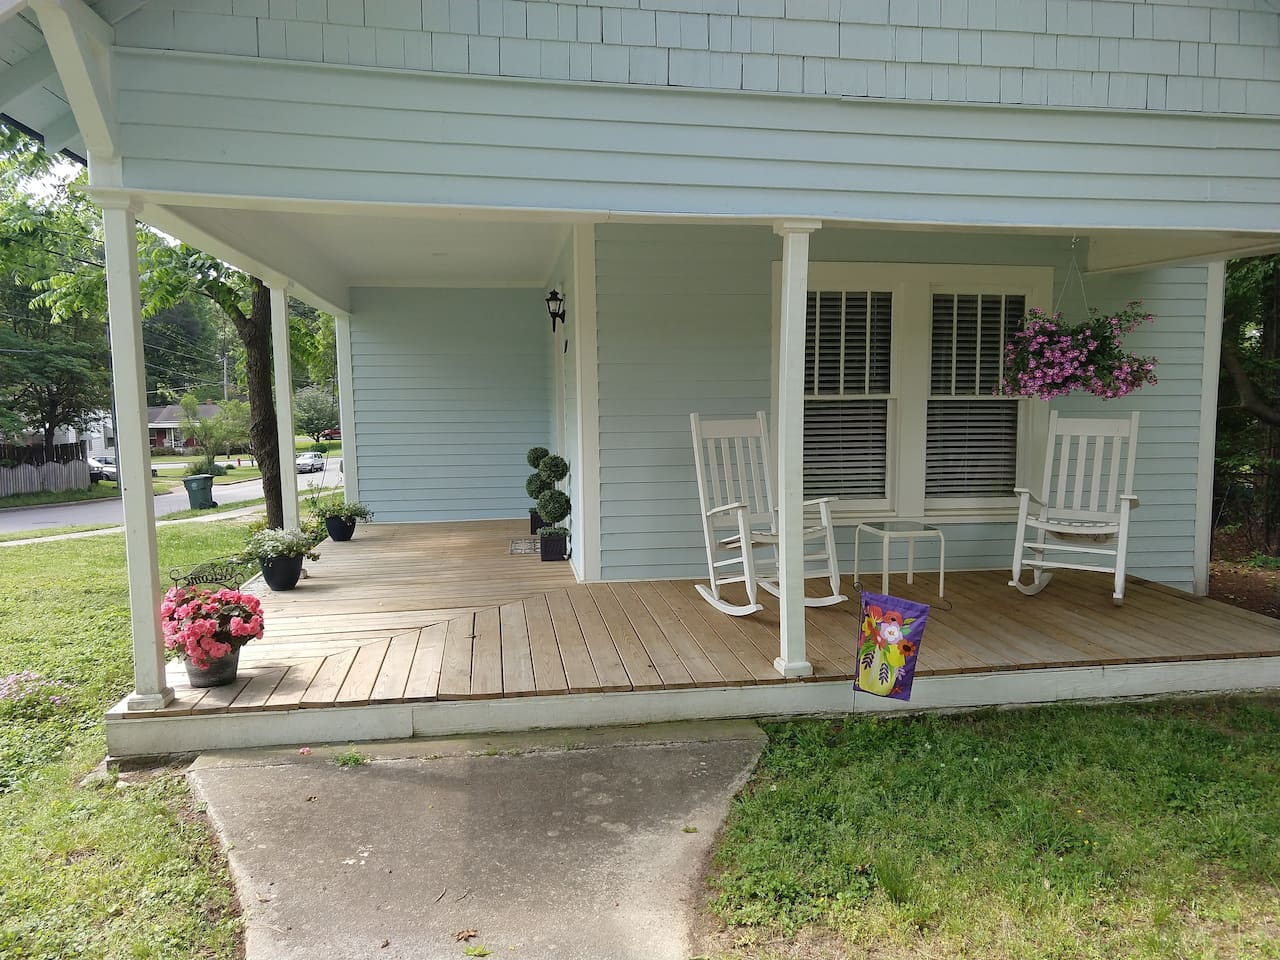 Enjoy the whole cottage plus this lovely front porch for those summer days and nights!